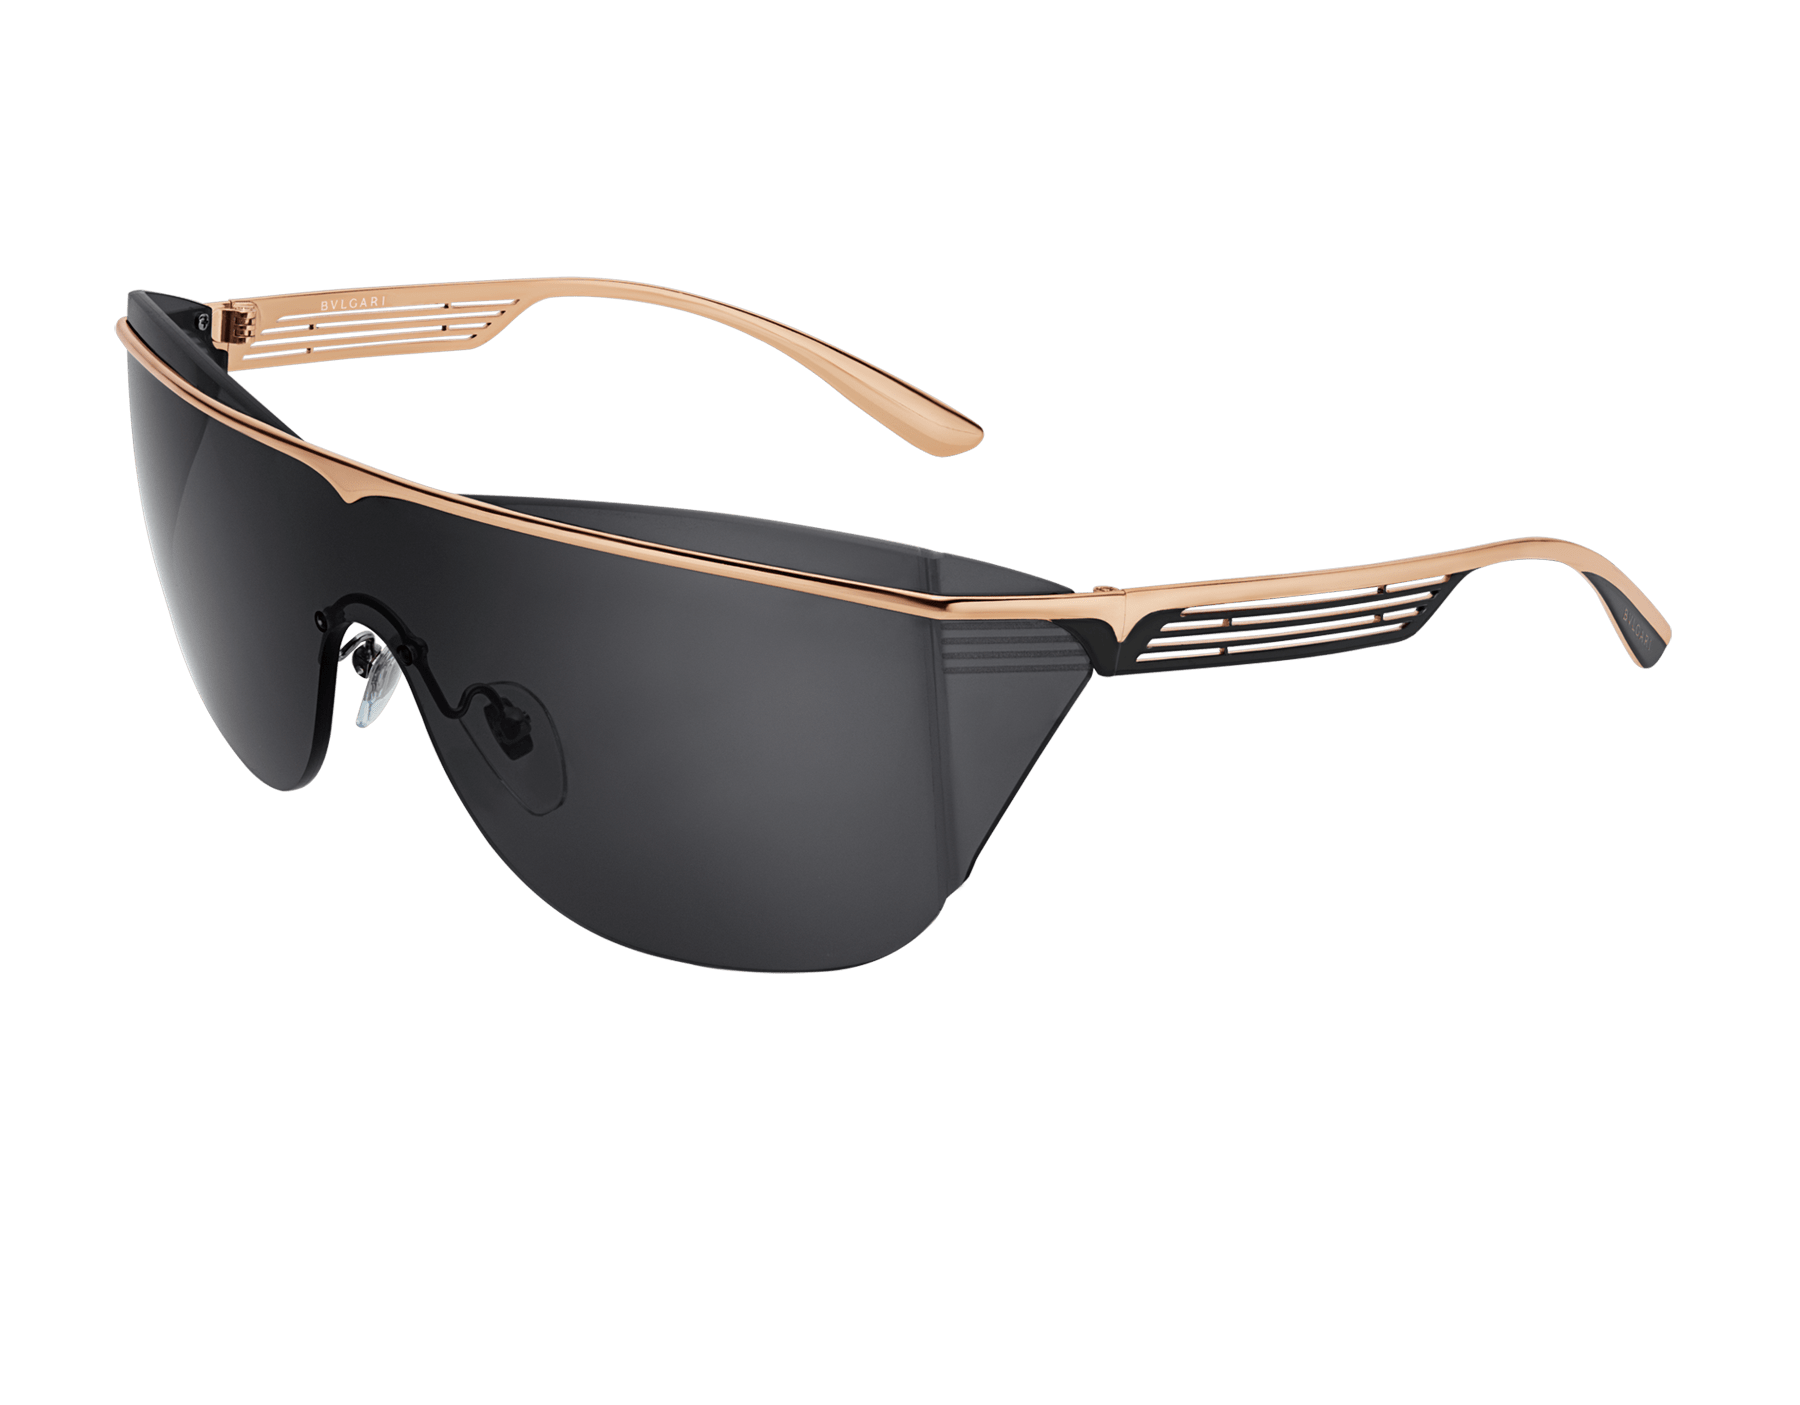 Bulgari B.zero1 B.supercurve metal shield sunglasses. 903964 image 1